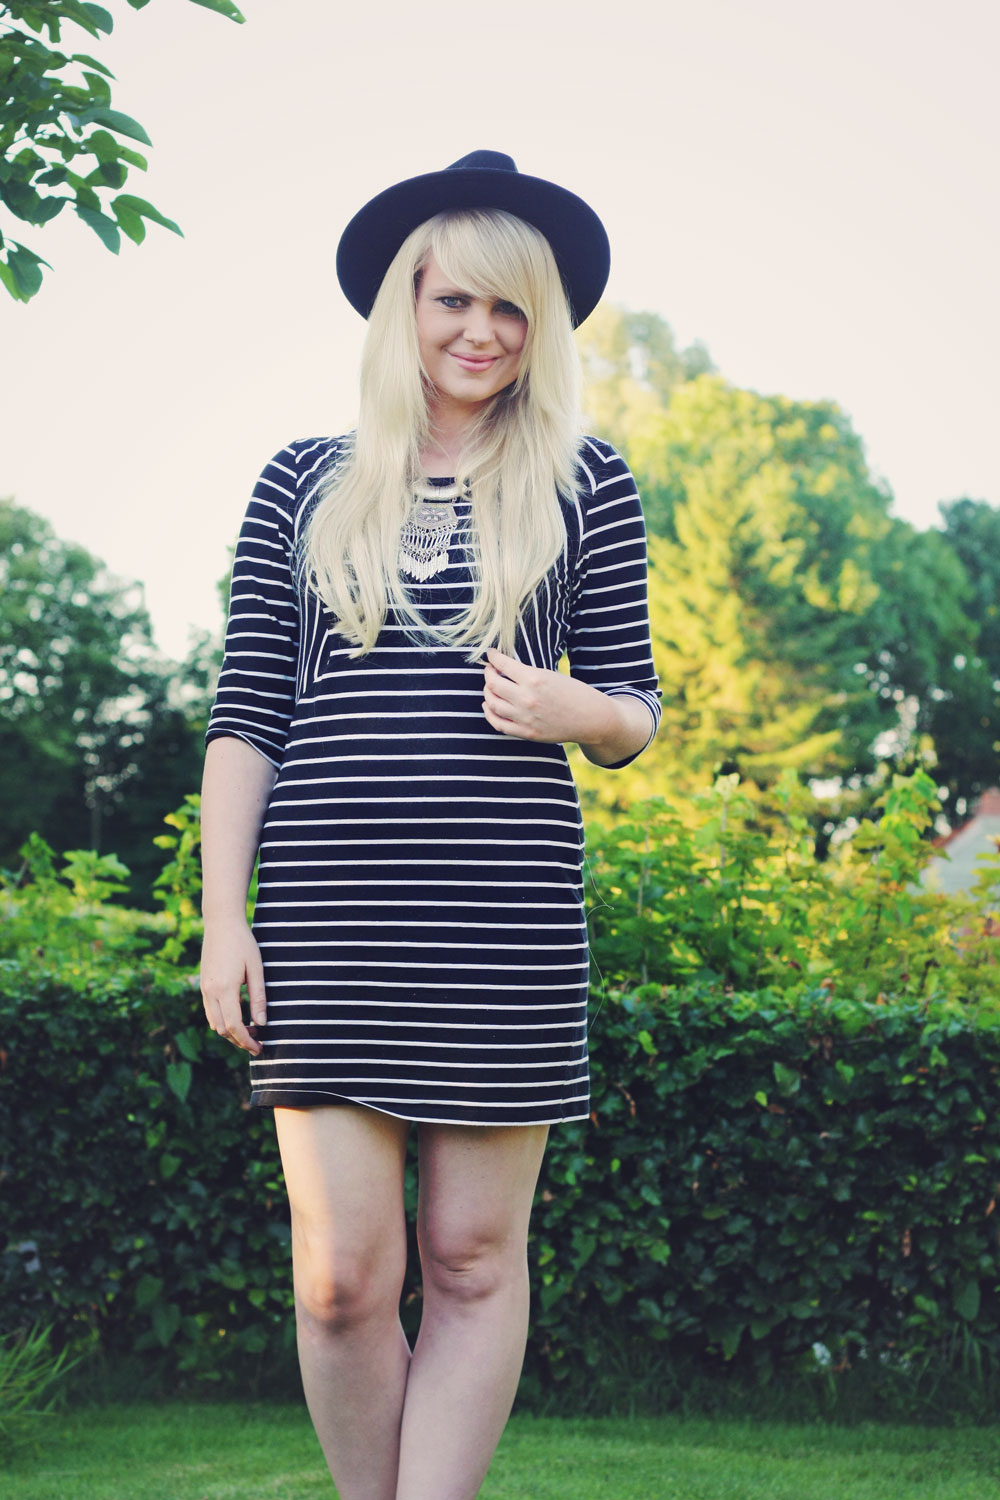 What I wore - All stripes